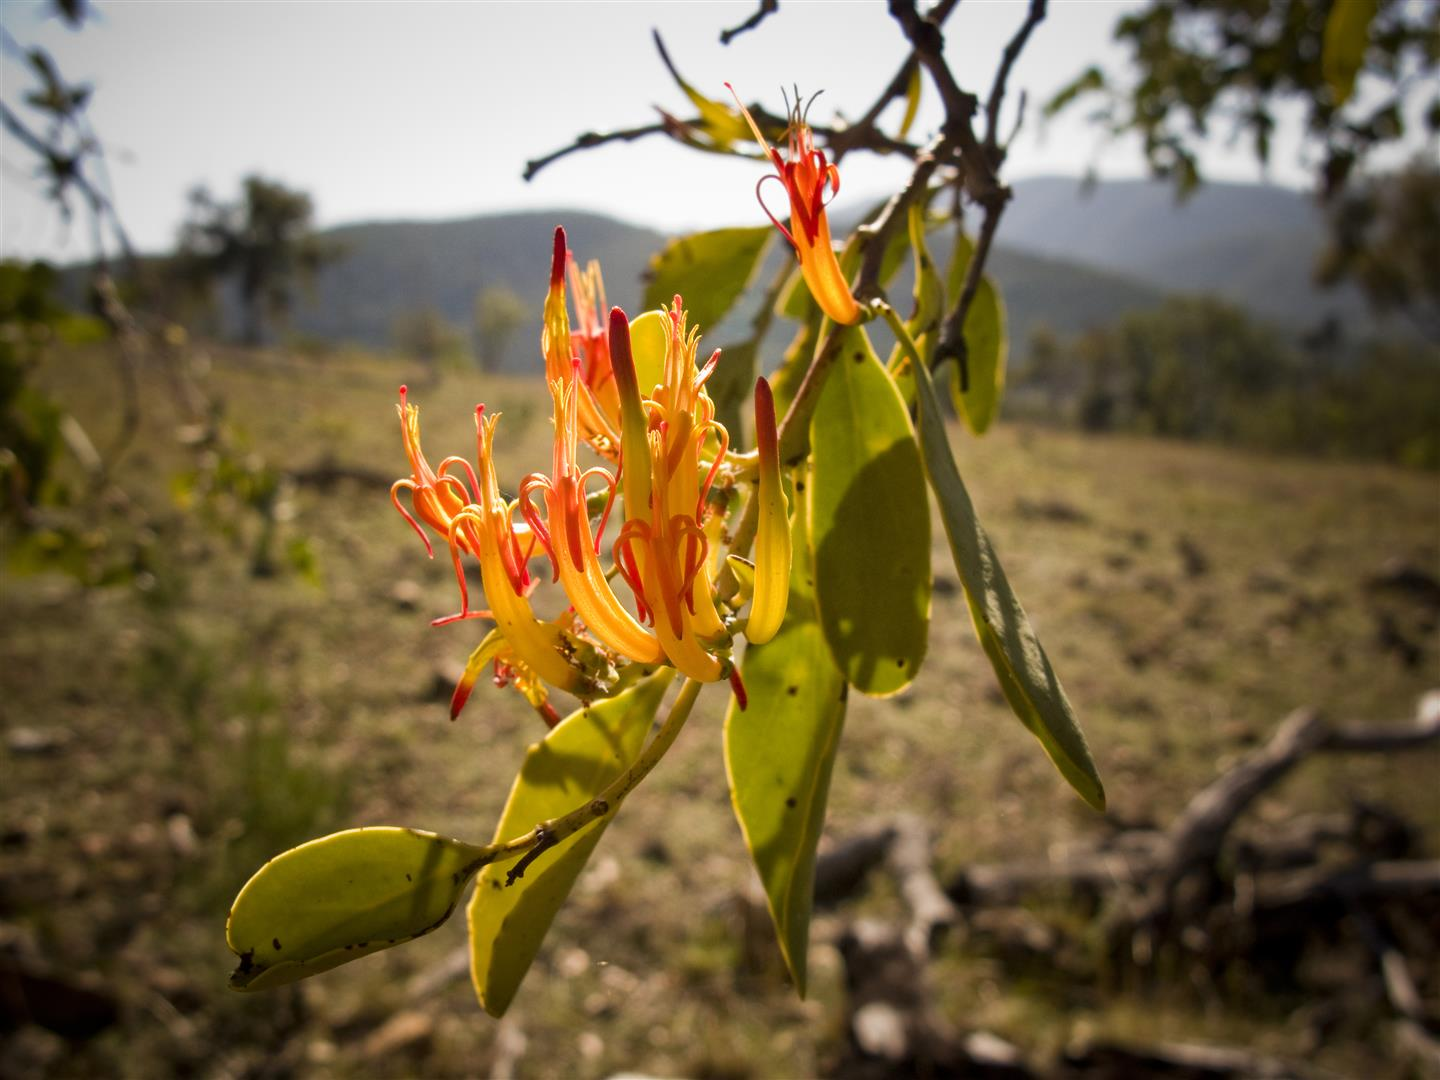 Orange-flowered Mistletoe (Dendropthoe glabrescens), Sundown National Park. Photo R. Ashdown.